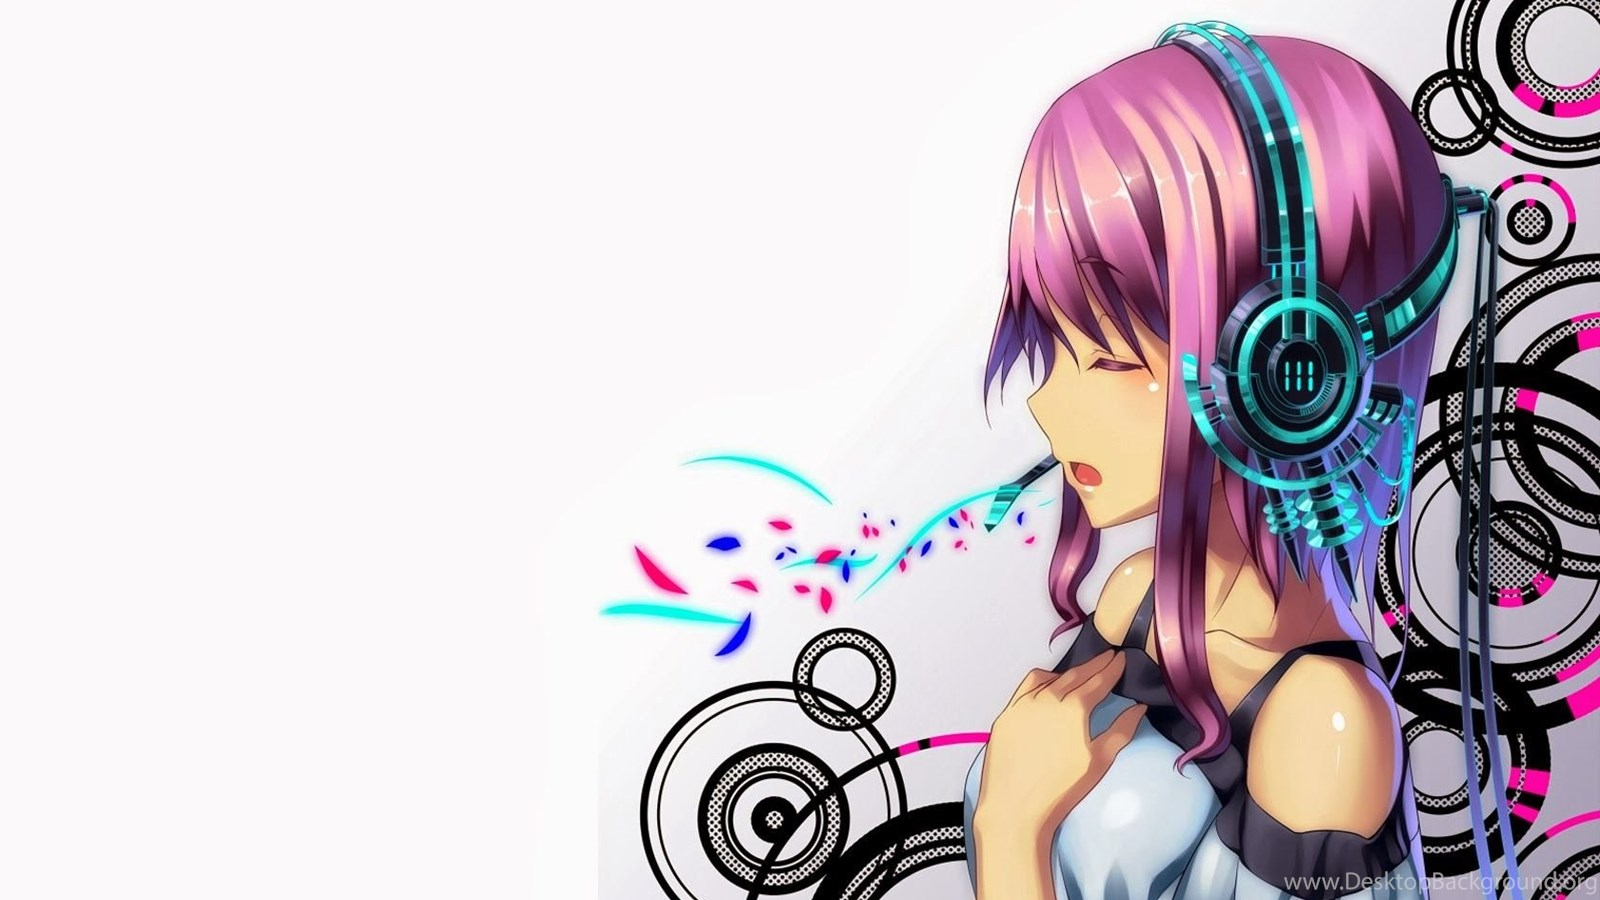 Anime girl abstract headphone hd wallpapers 1680x1050 - Imagens em hd de animes ...